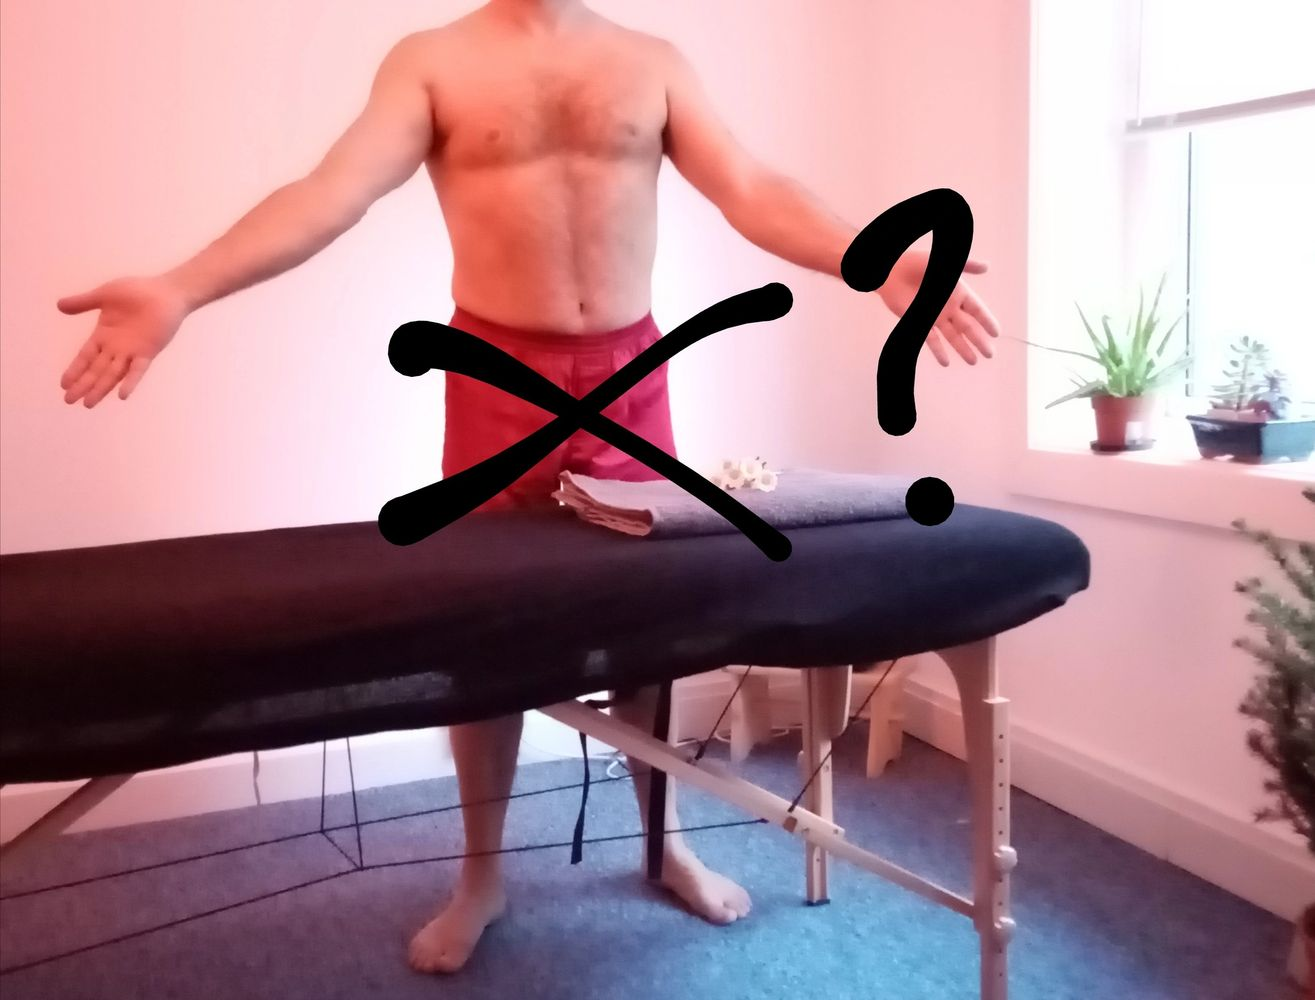 James at SkinMap, in front of massage table   the implication that his shorts are optional